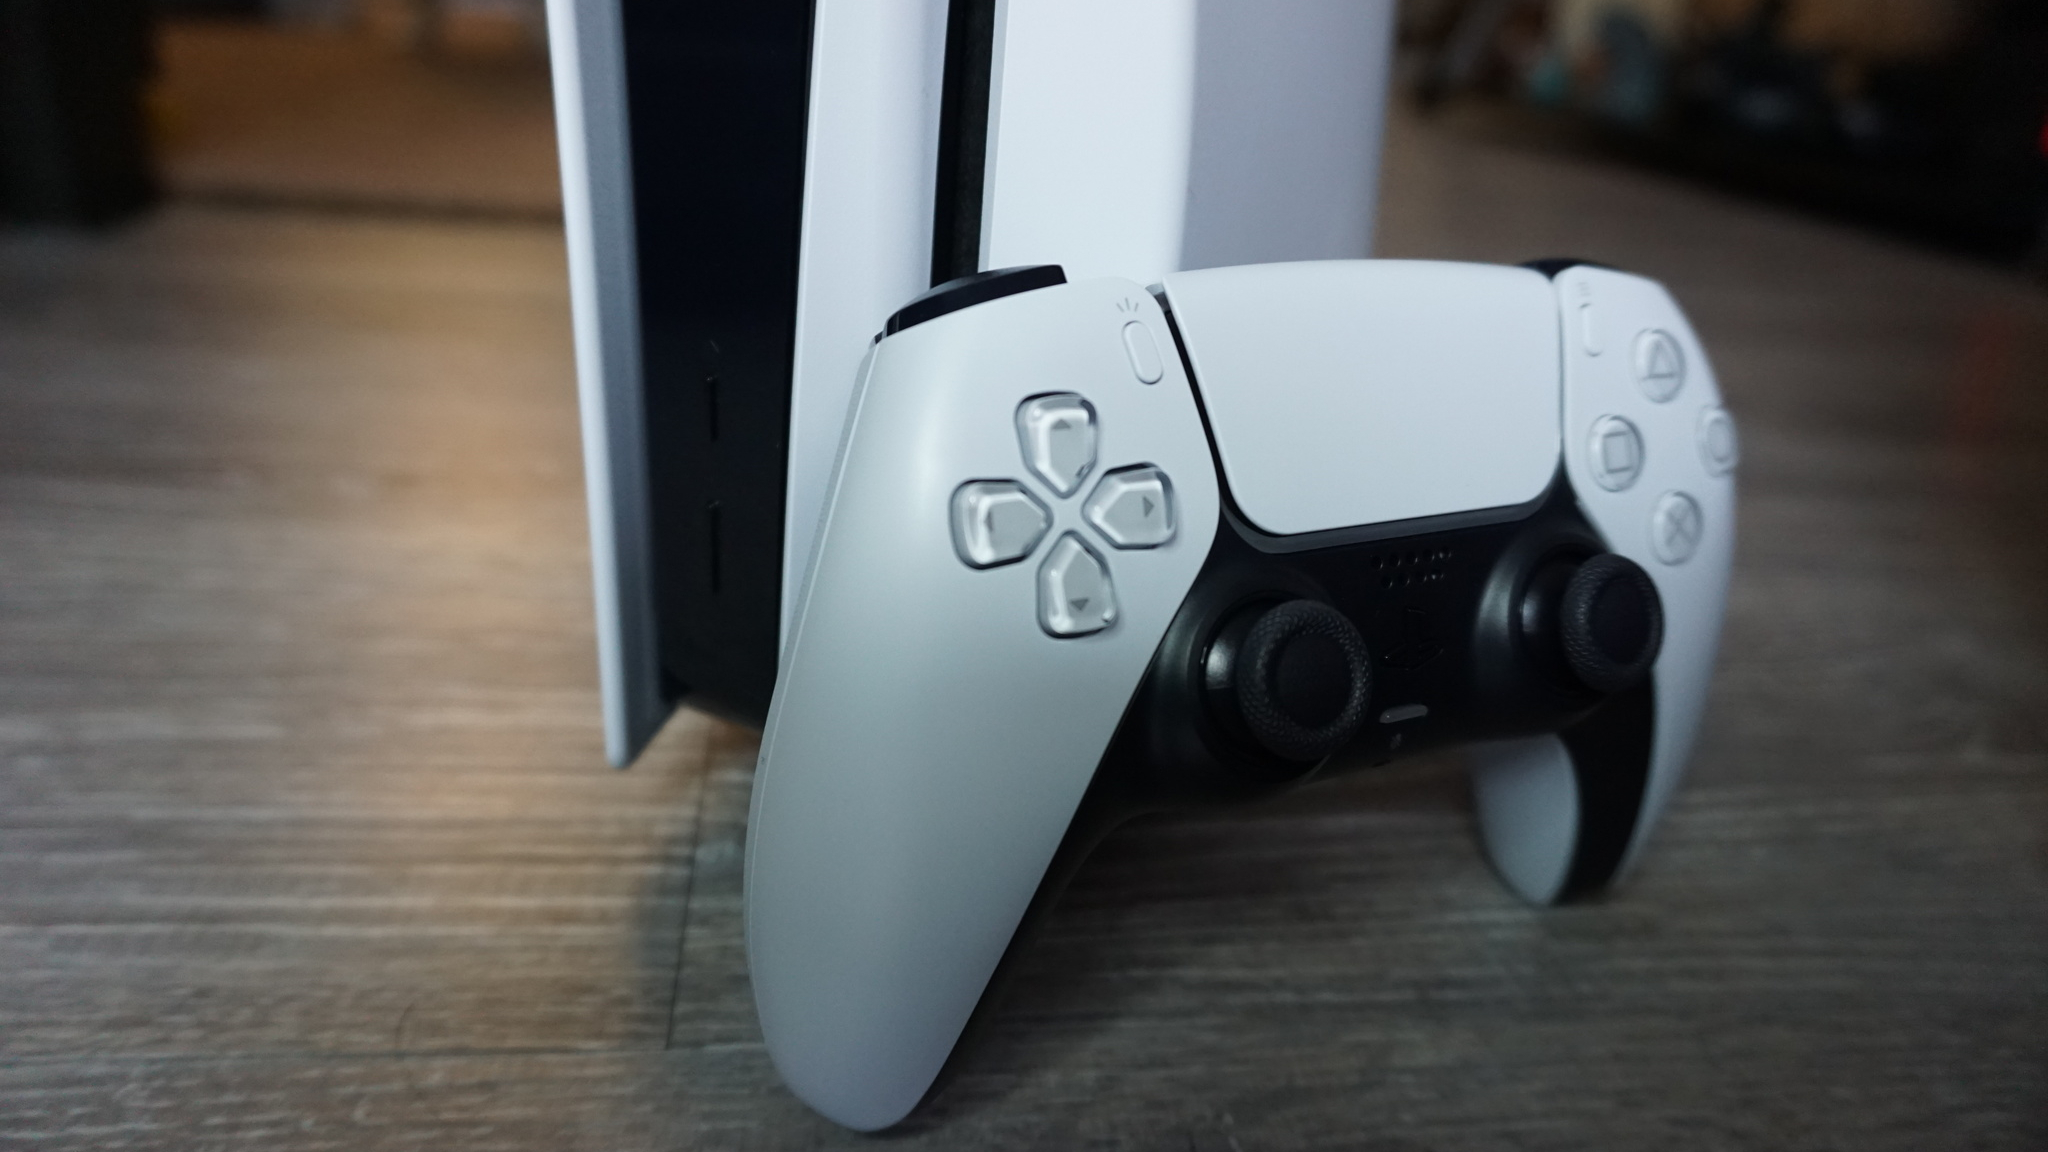 The latest PlayStation 5 update